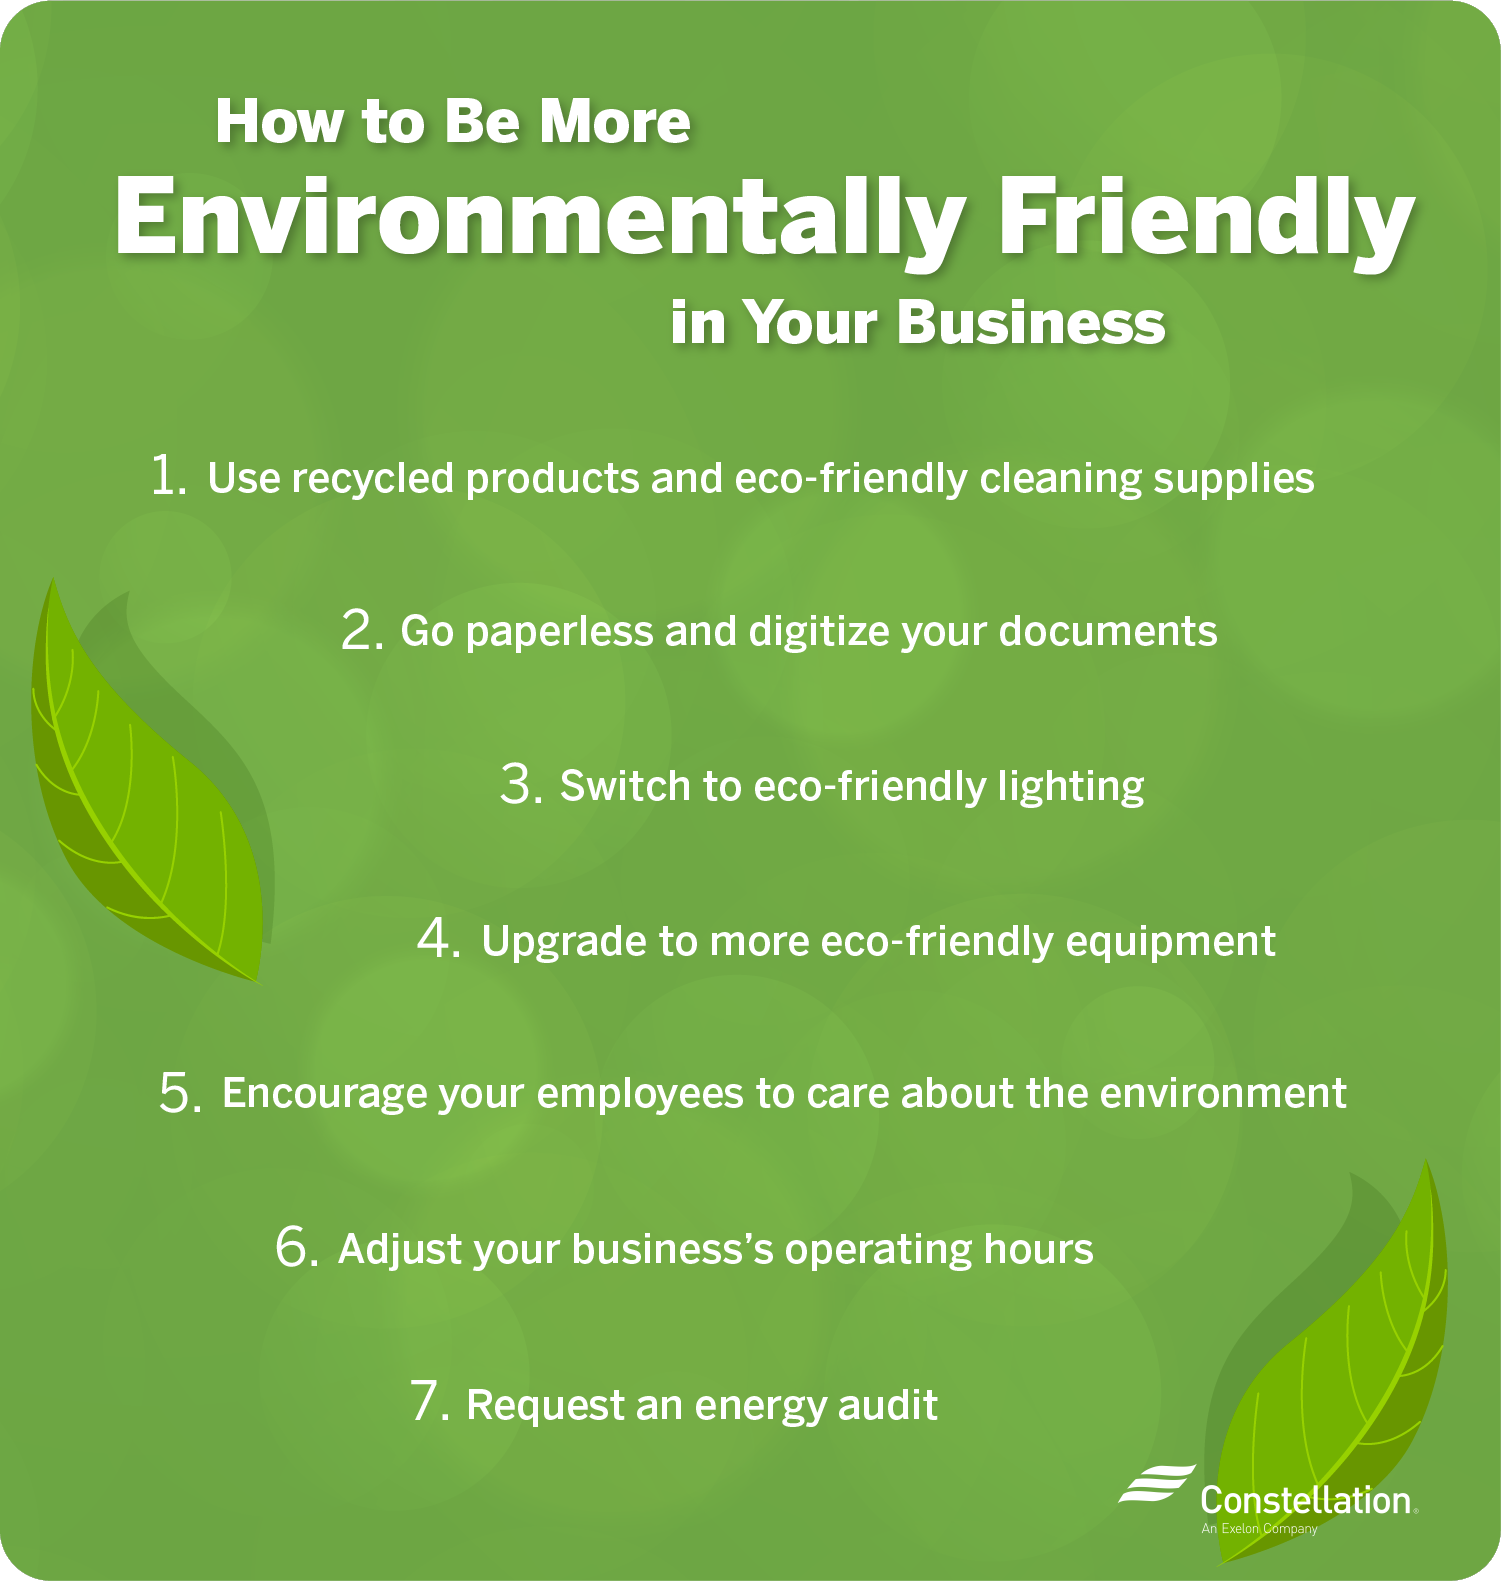 How to be more environmentally friendly in your business